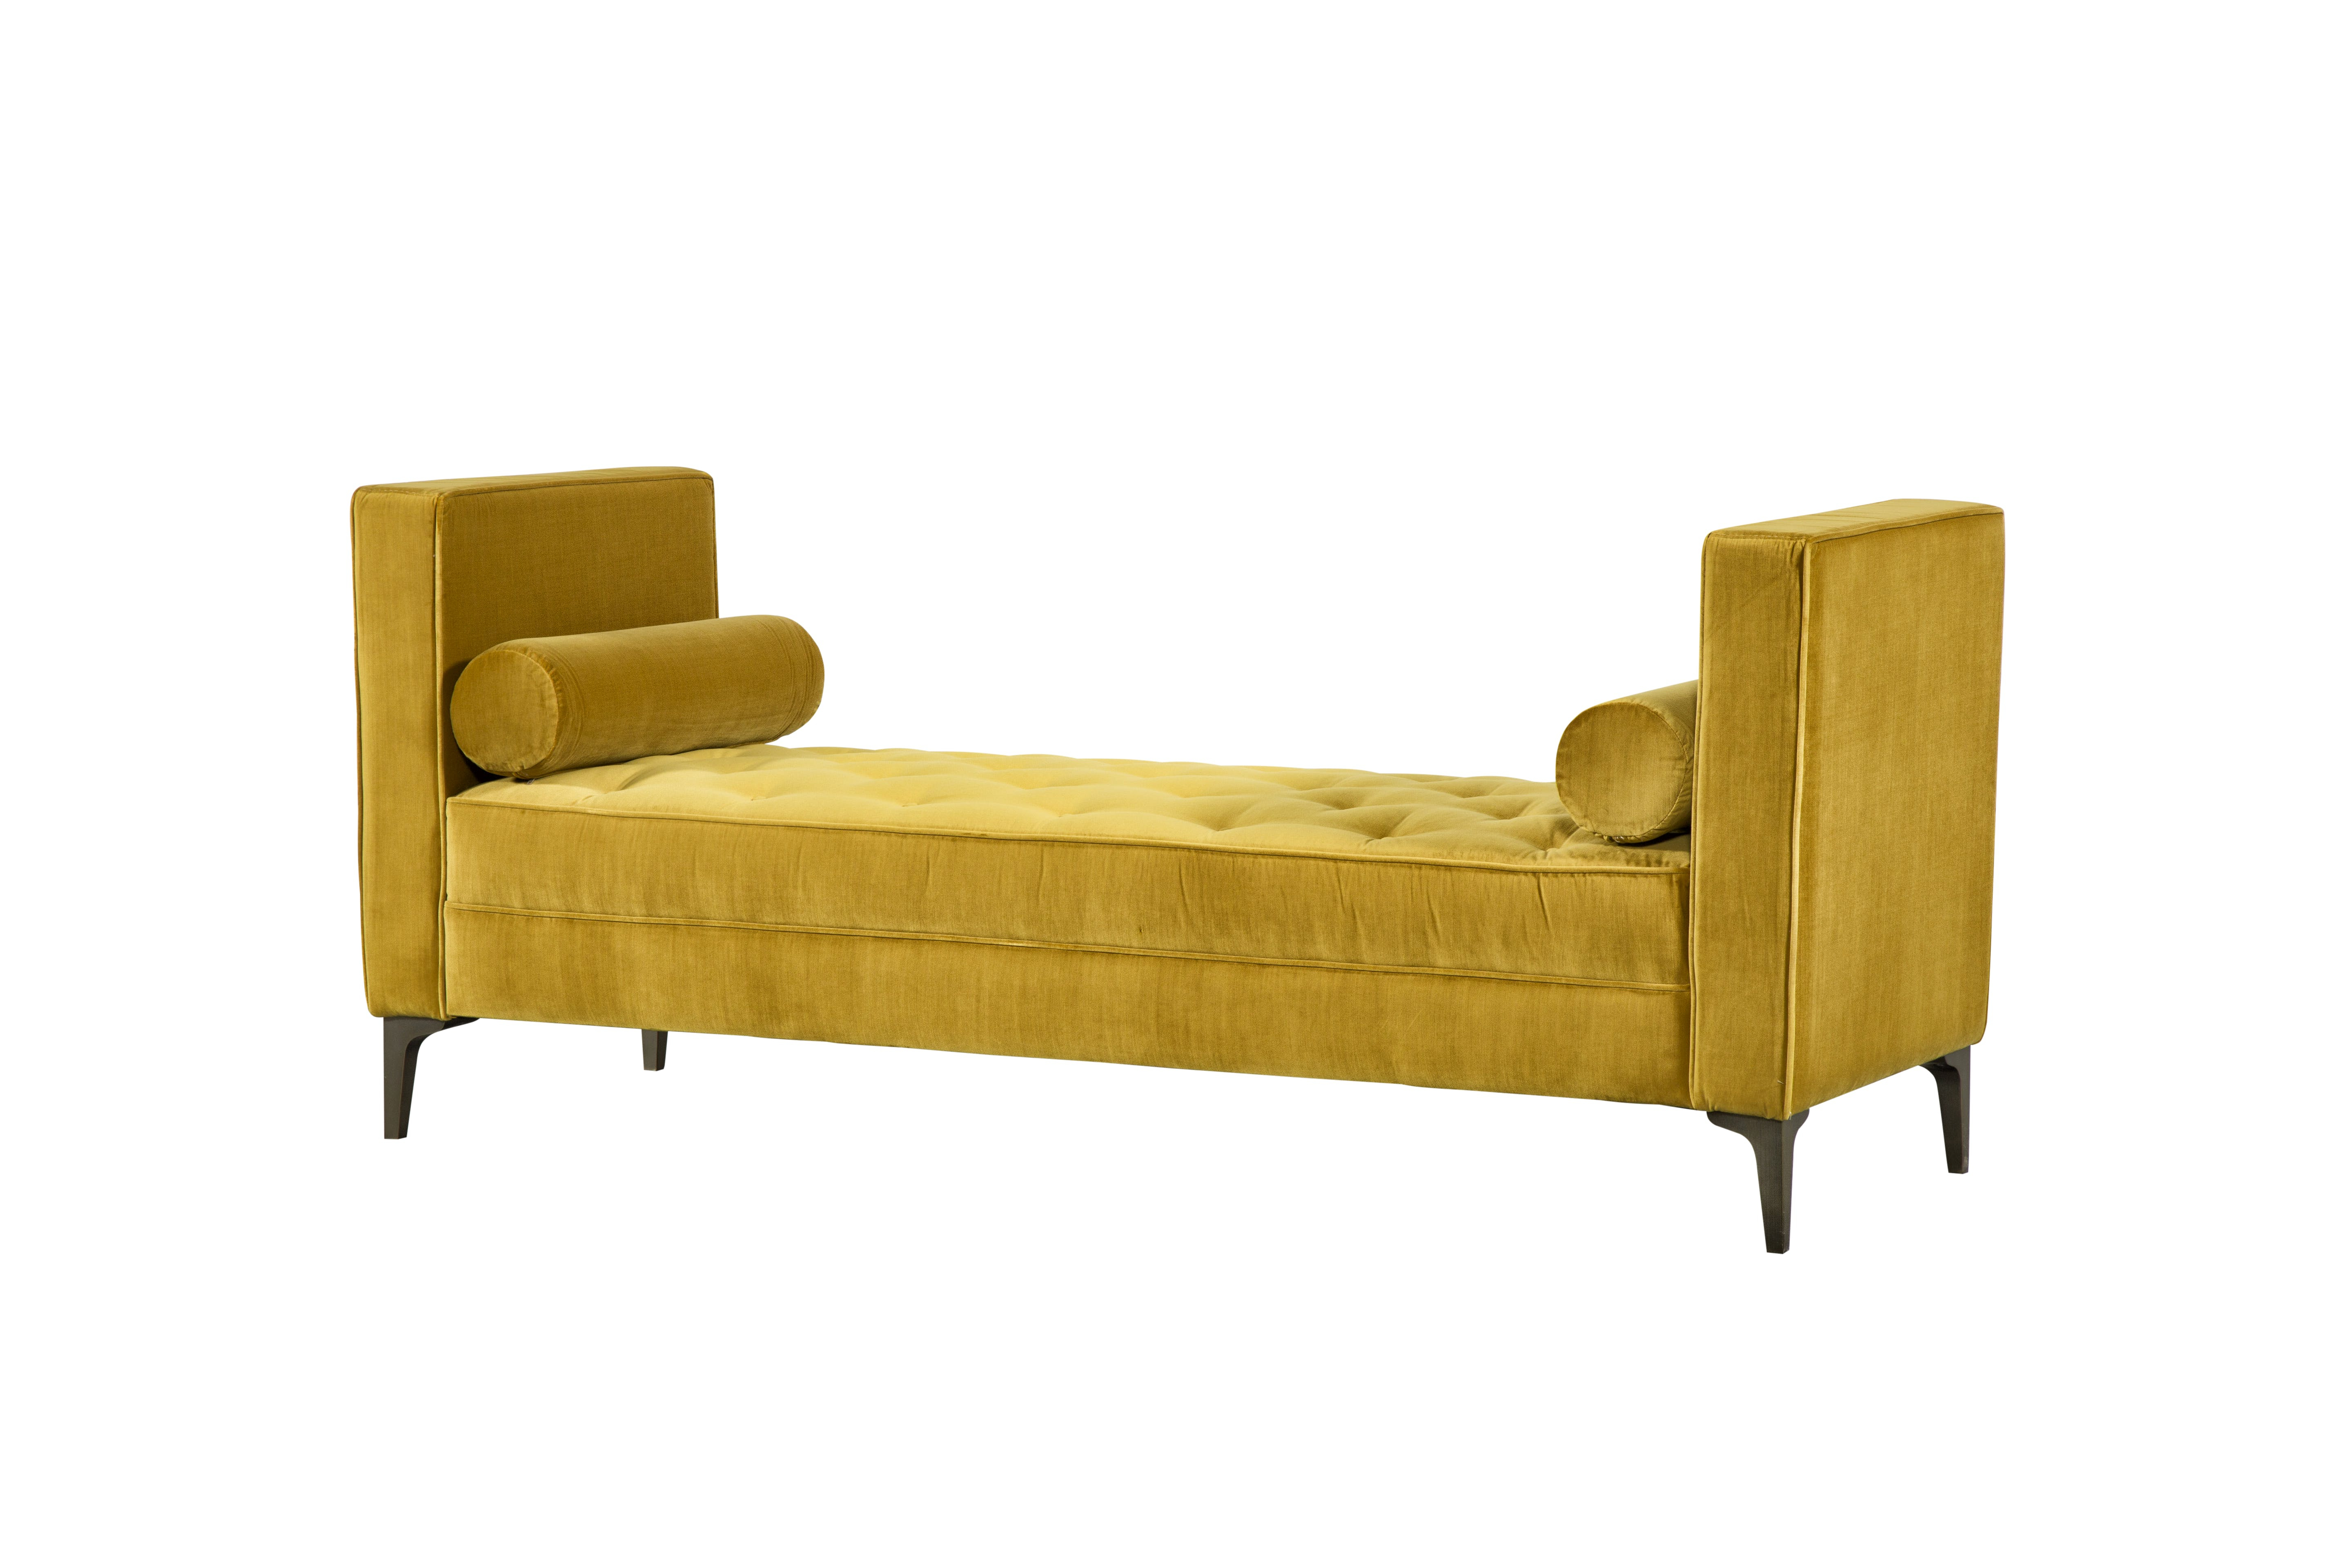 Matteo Arm Sofa Chairs By Nate Berkus And Jeremiah Brent Inside Trendy Nate Berkus Just Launched A Home Collection With Hubby Jeremiah (View 3 of 20)